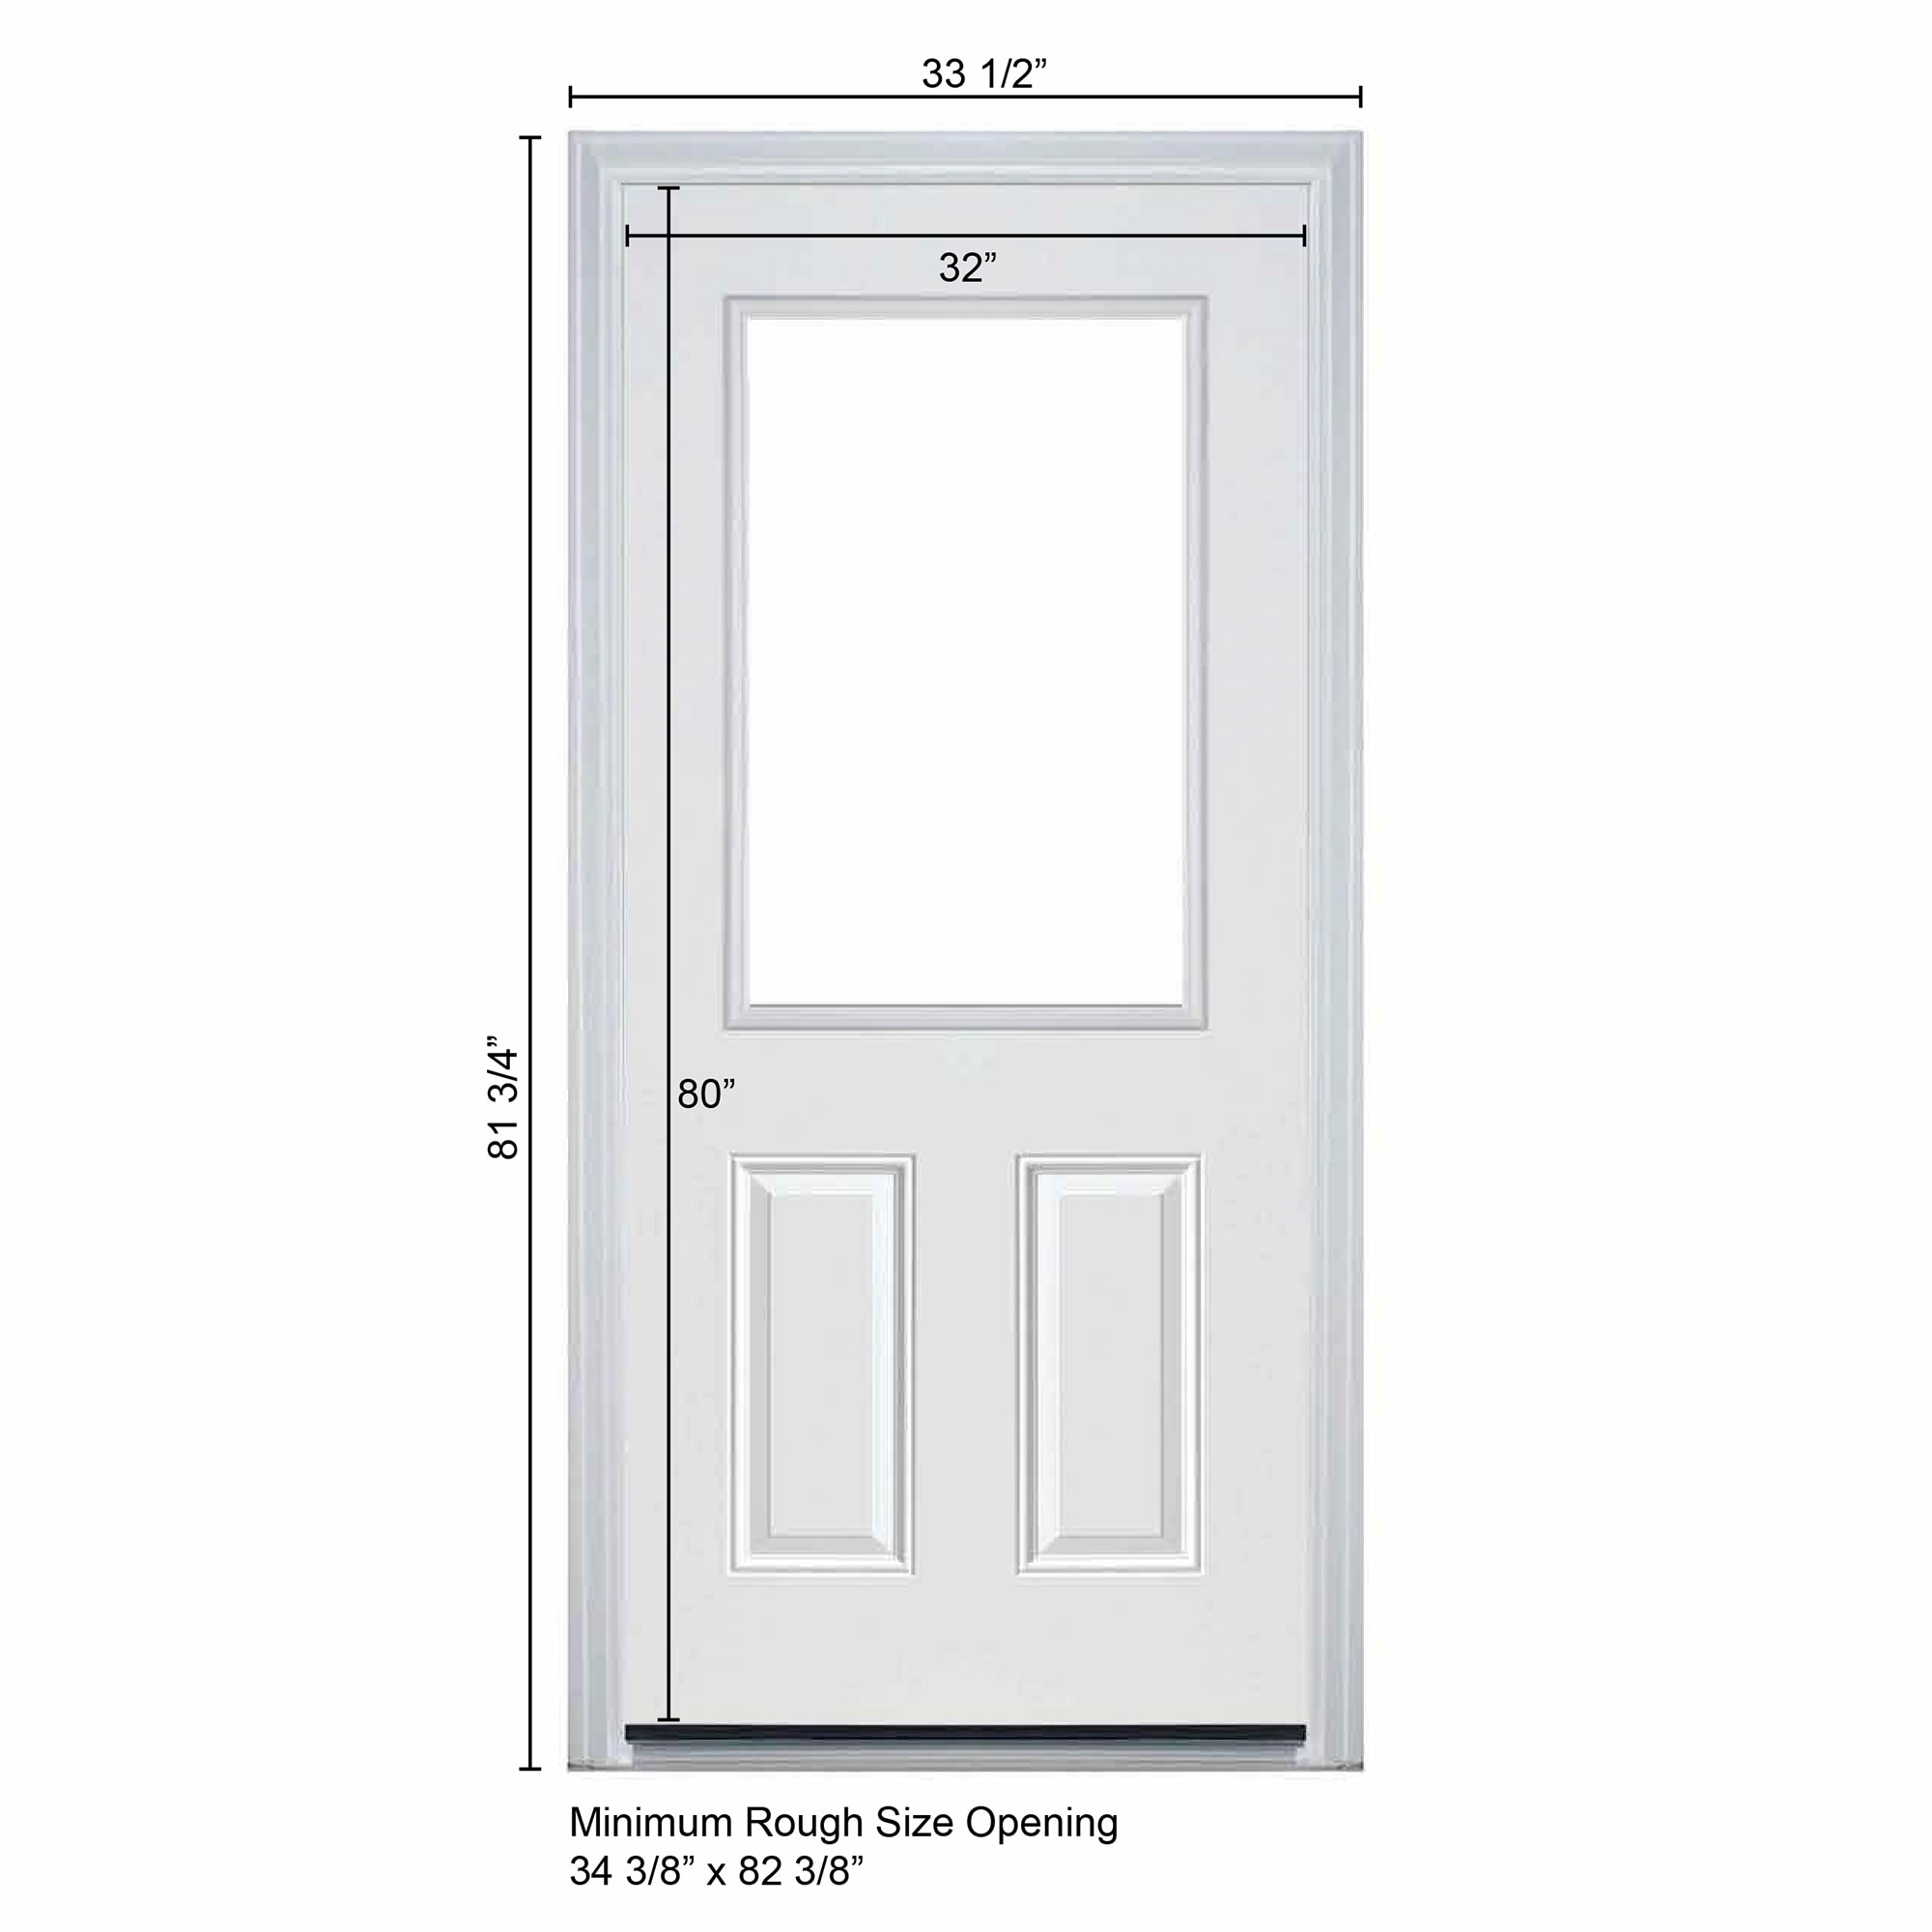 2000 #202128 New Concept Exterior Doors Pre Hung Steel Pandora Collection White  wallpaper Pre Hung Steel Doors 44752000